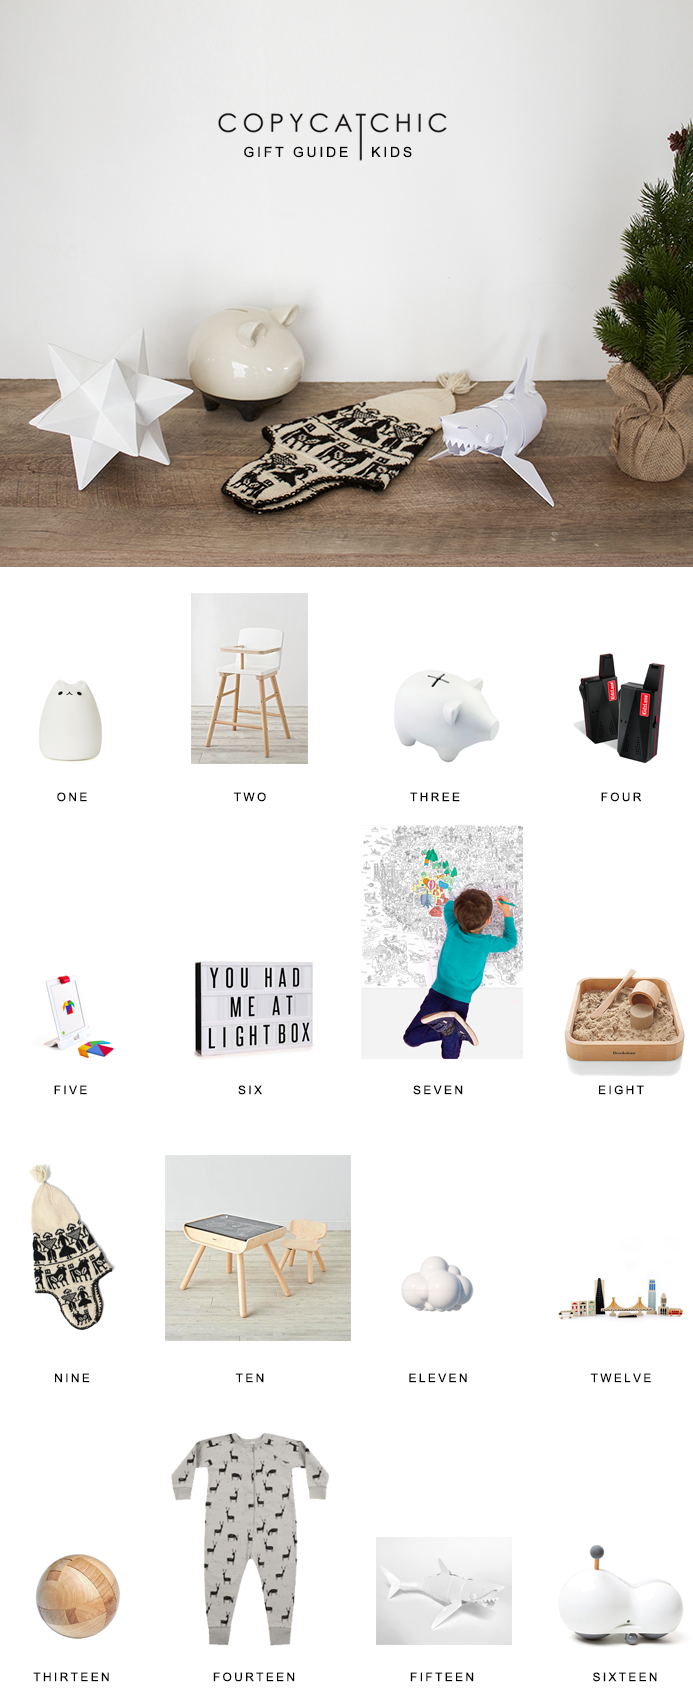 Christmas gifts for children   Copy Cat Chic favorites for 2016 for those cute kids holiday season!   Luxe living for less   modern and minimalist toys